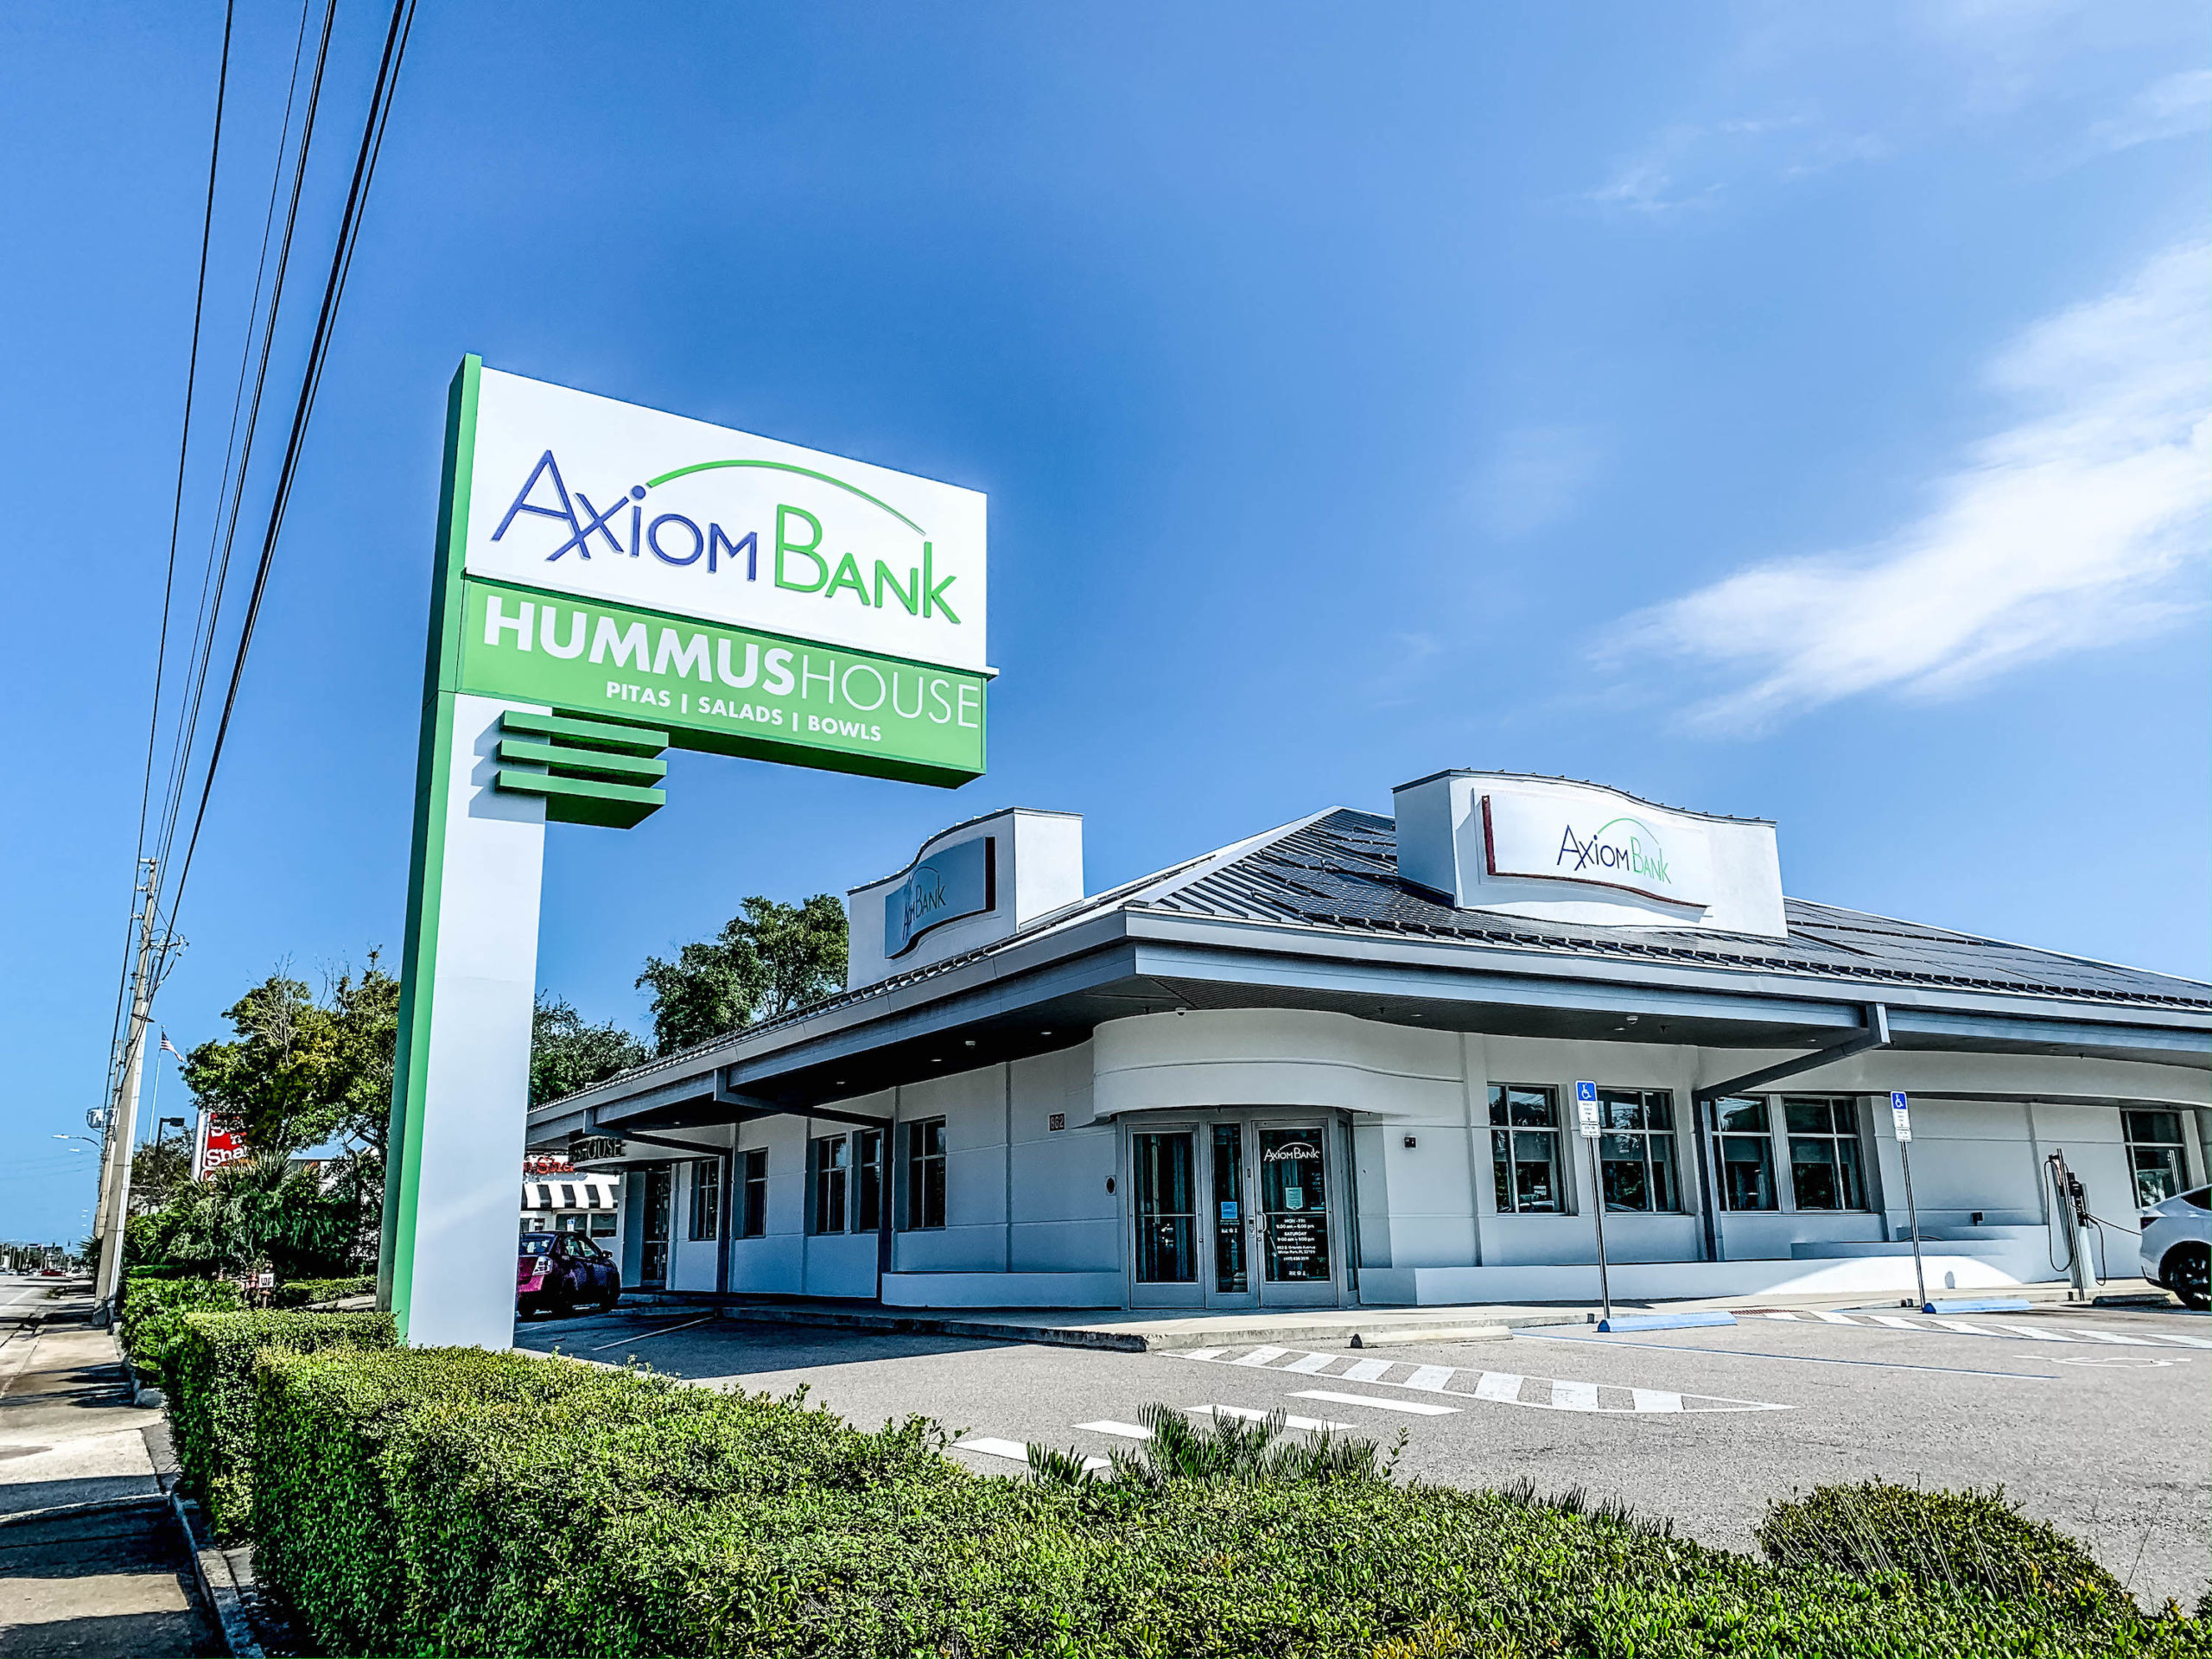 Winter Park location of Axiom Bank.